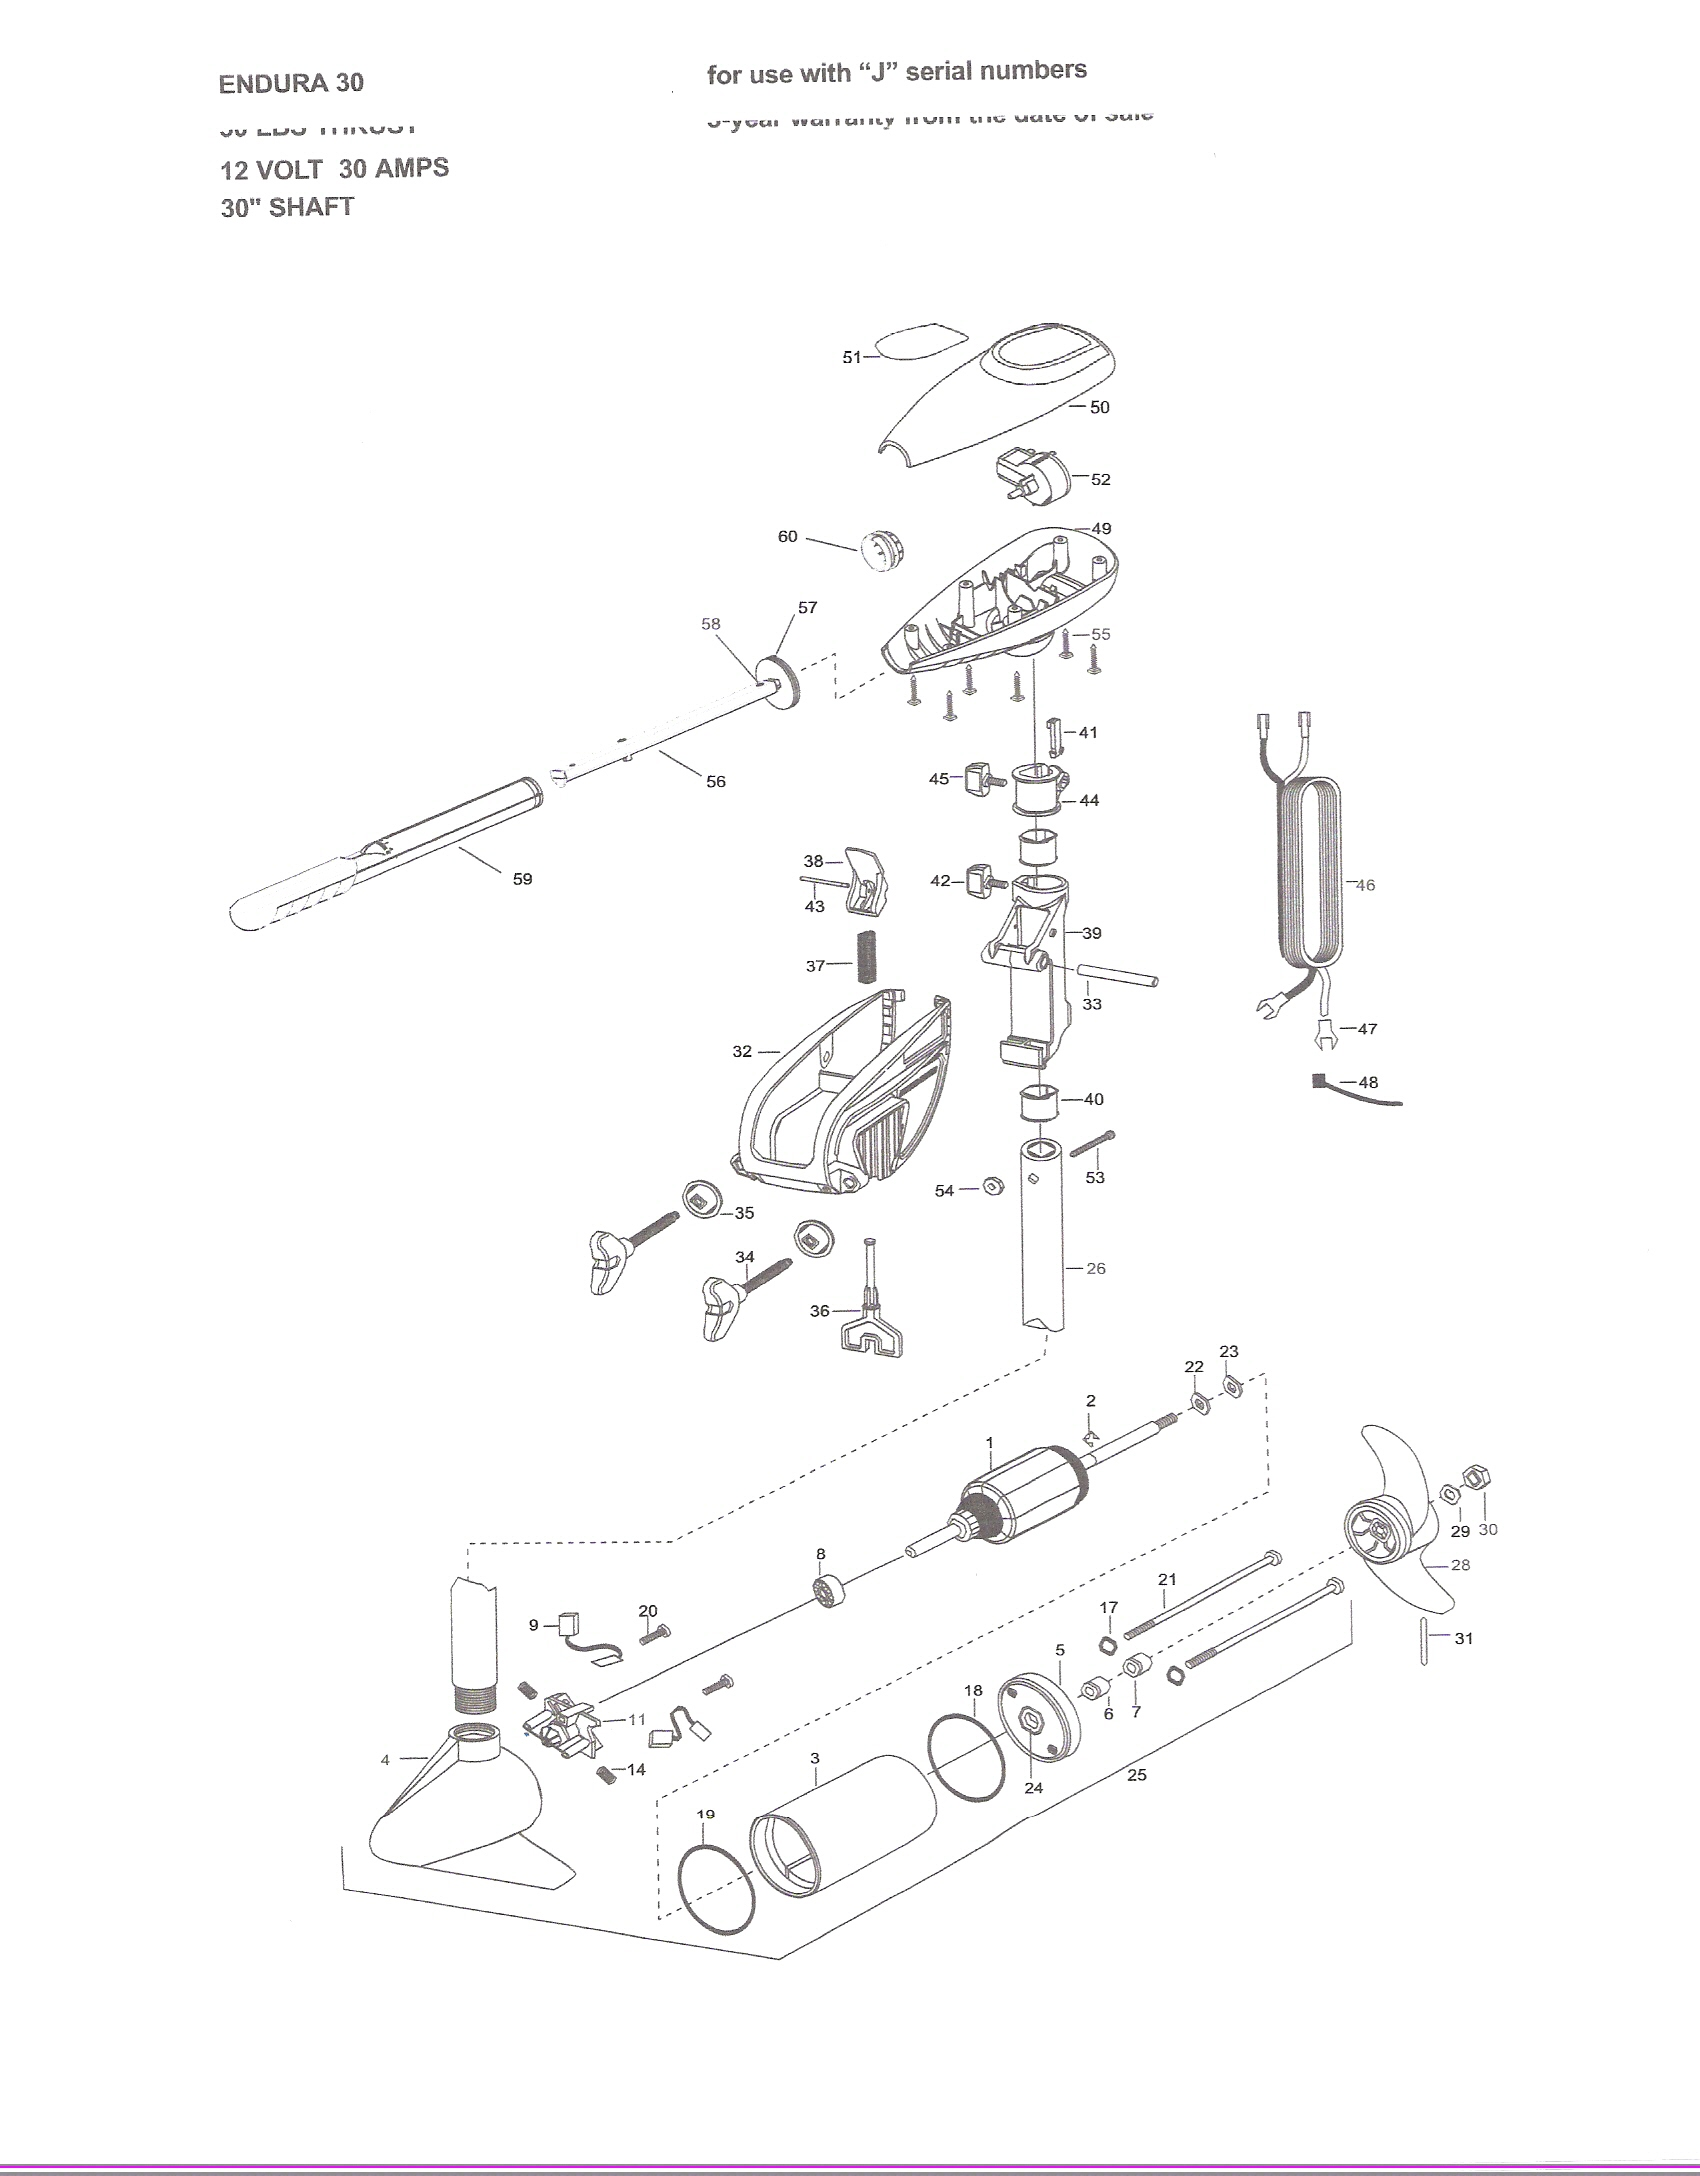 minn kota endura 40 parts diagram images